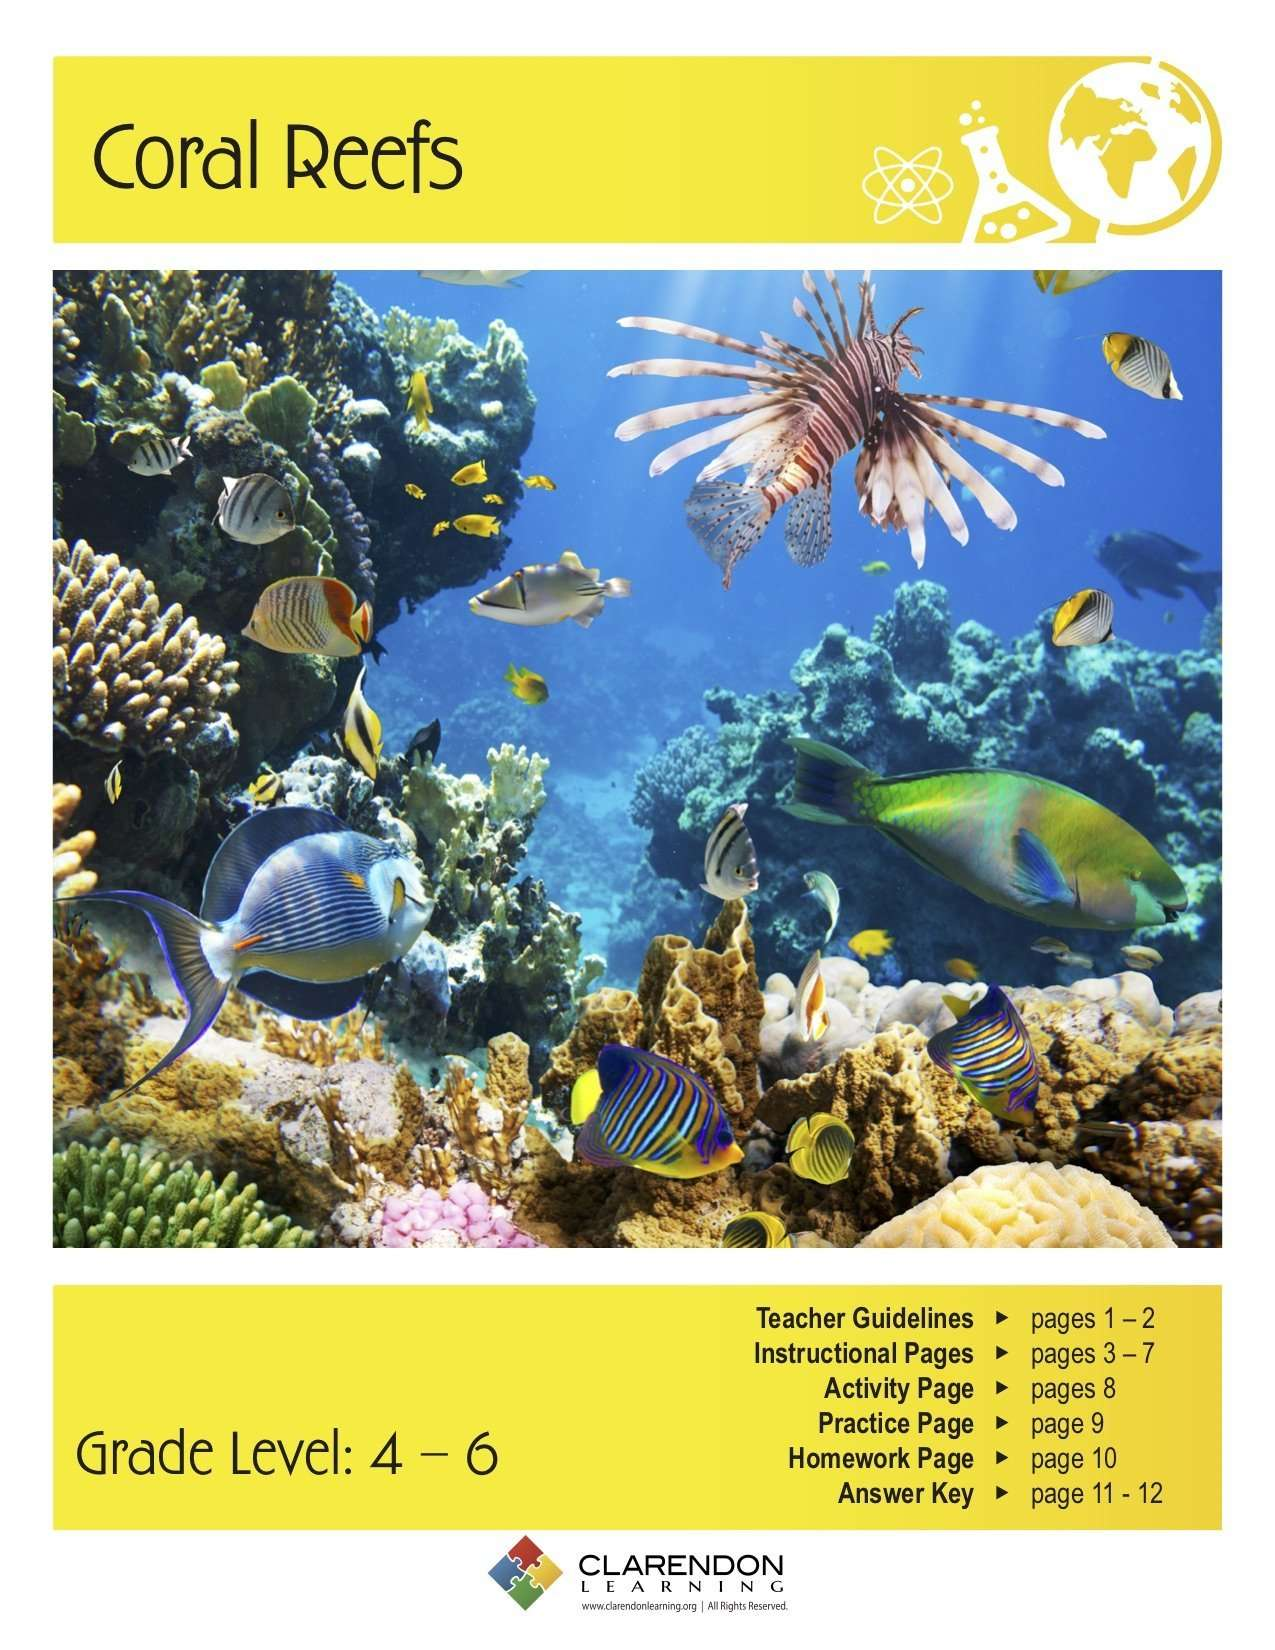 Coral Reefs Lesson Plan | Clarendon Learning